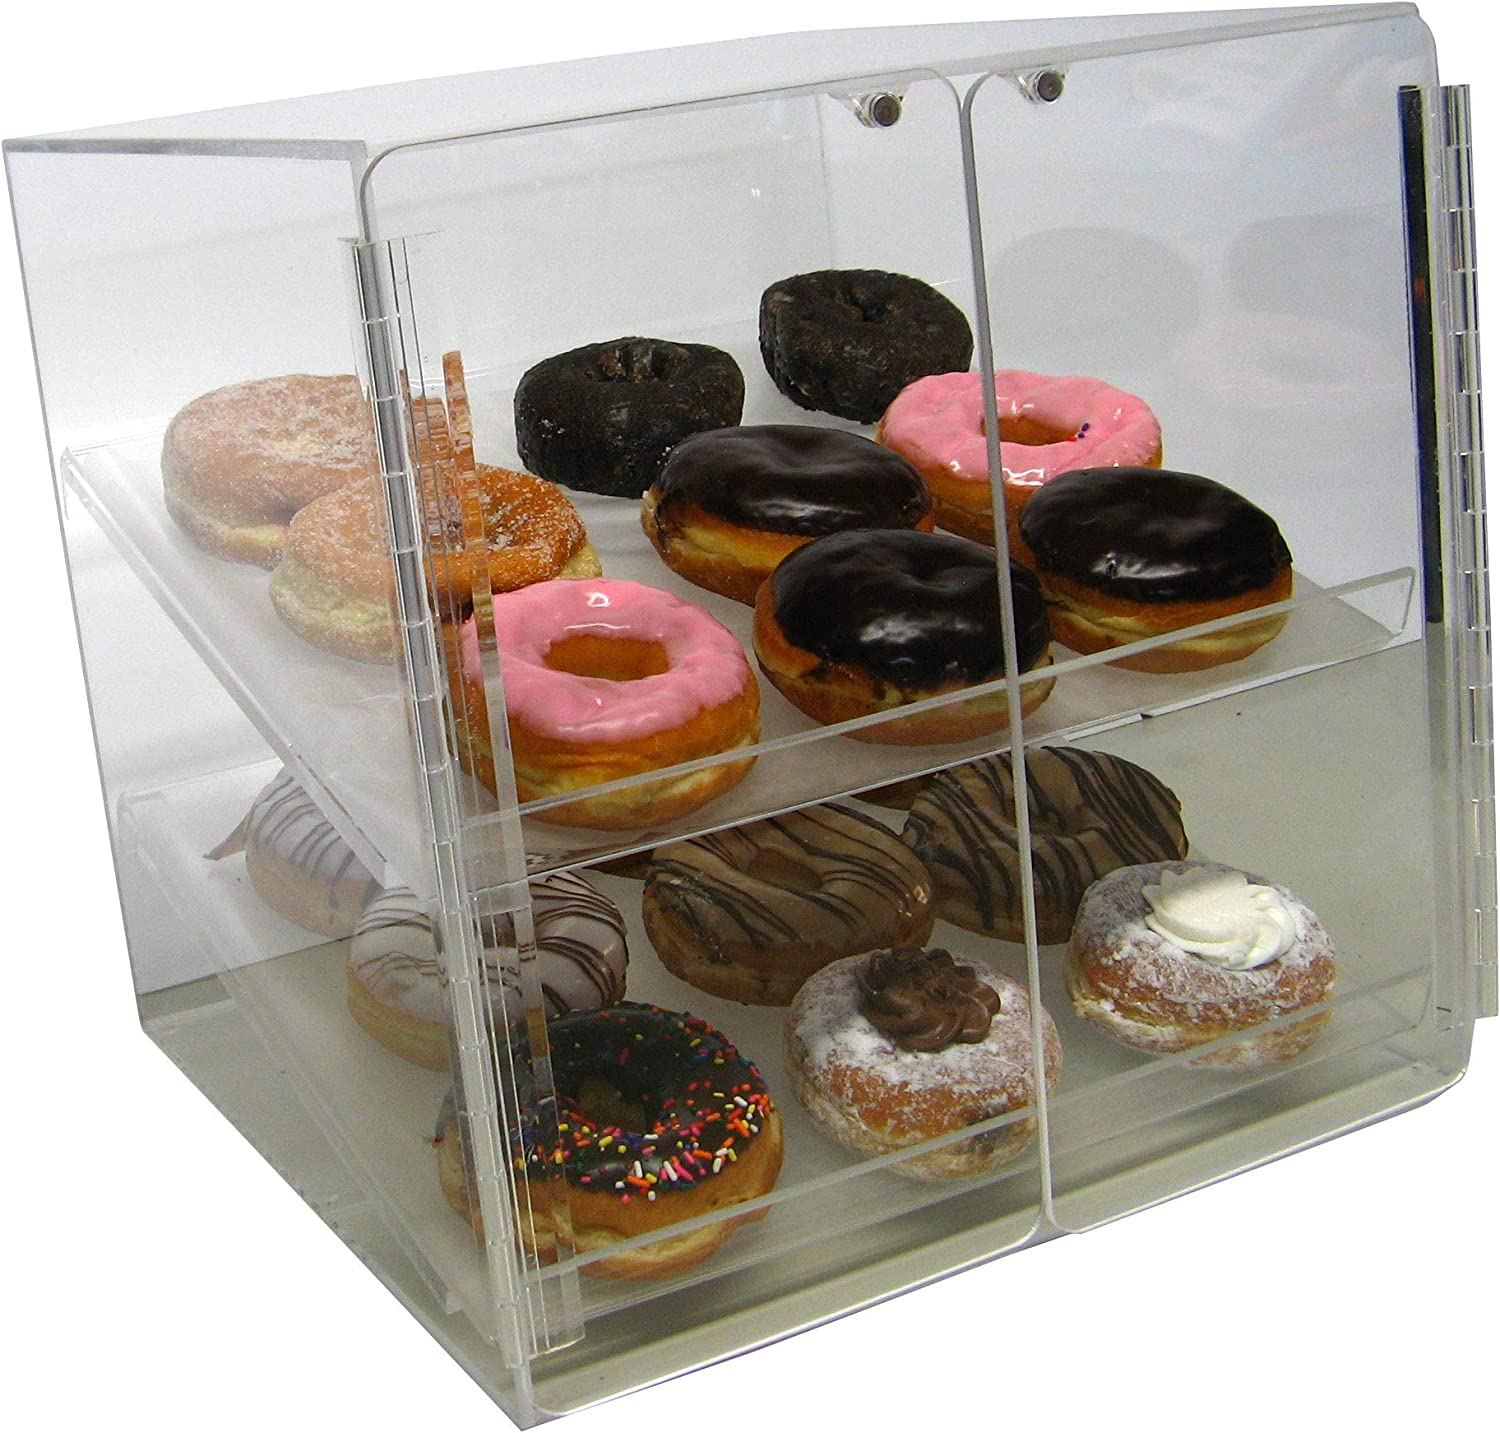 Self Serve Pastry New Orleans Mall or Donut Display Case 5 ☆ very popular 2 Deli for Bakery Trays